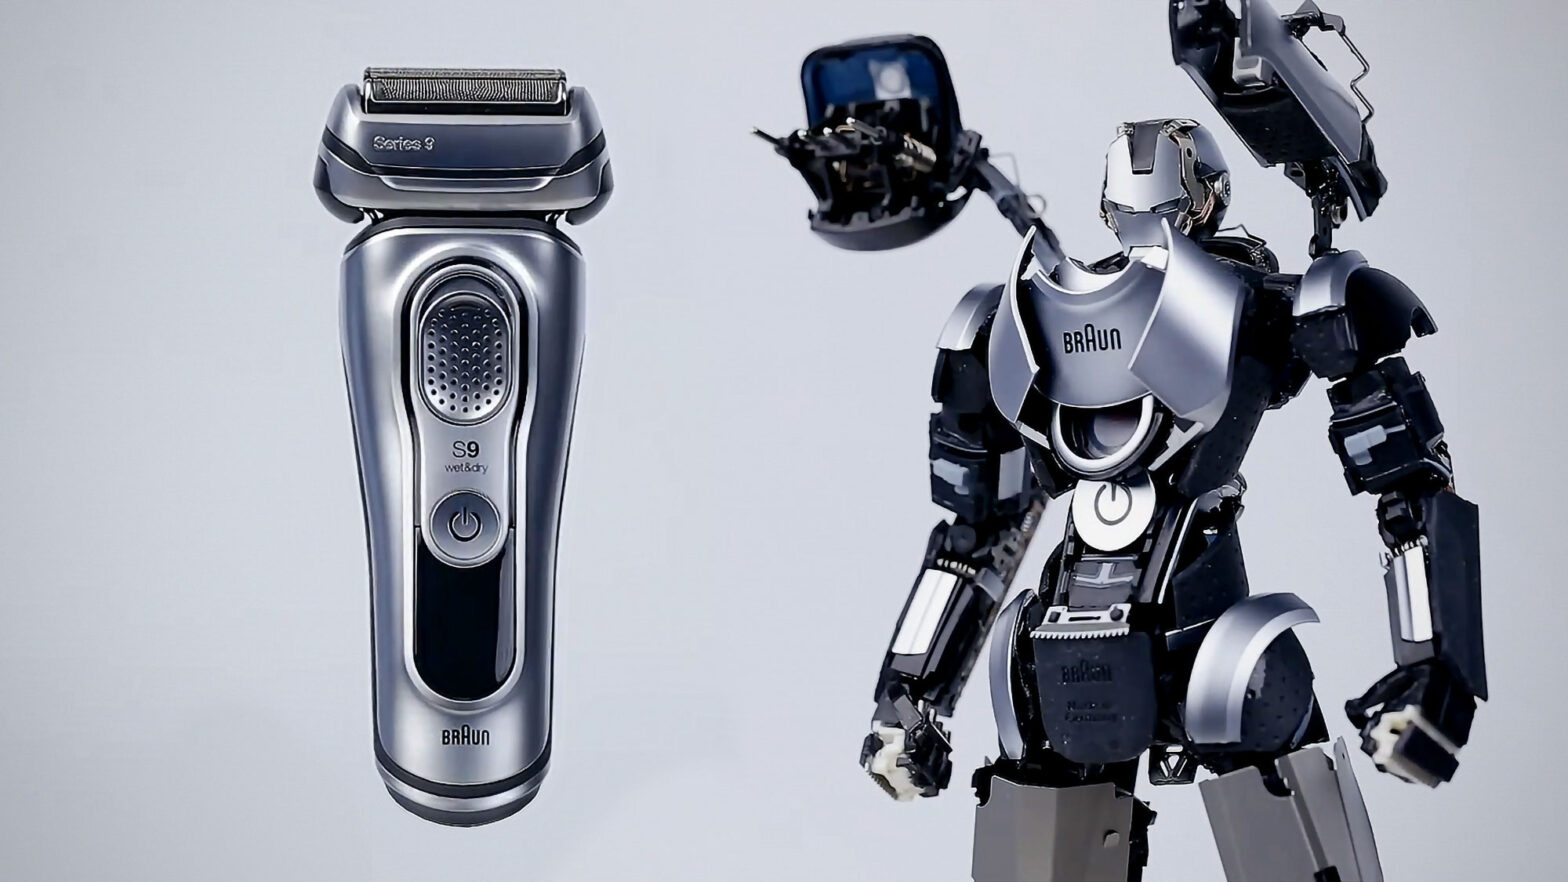 Ray Studio Turn Shaver Into a Robot Model